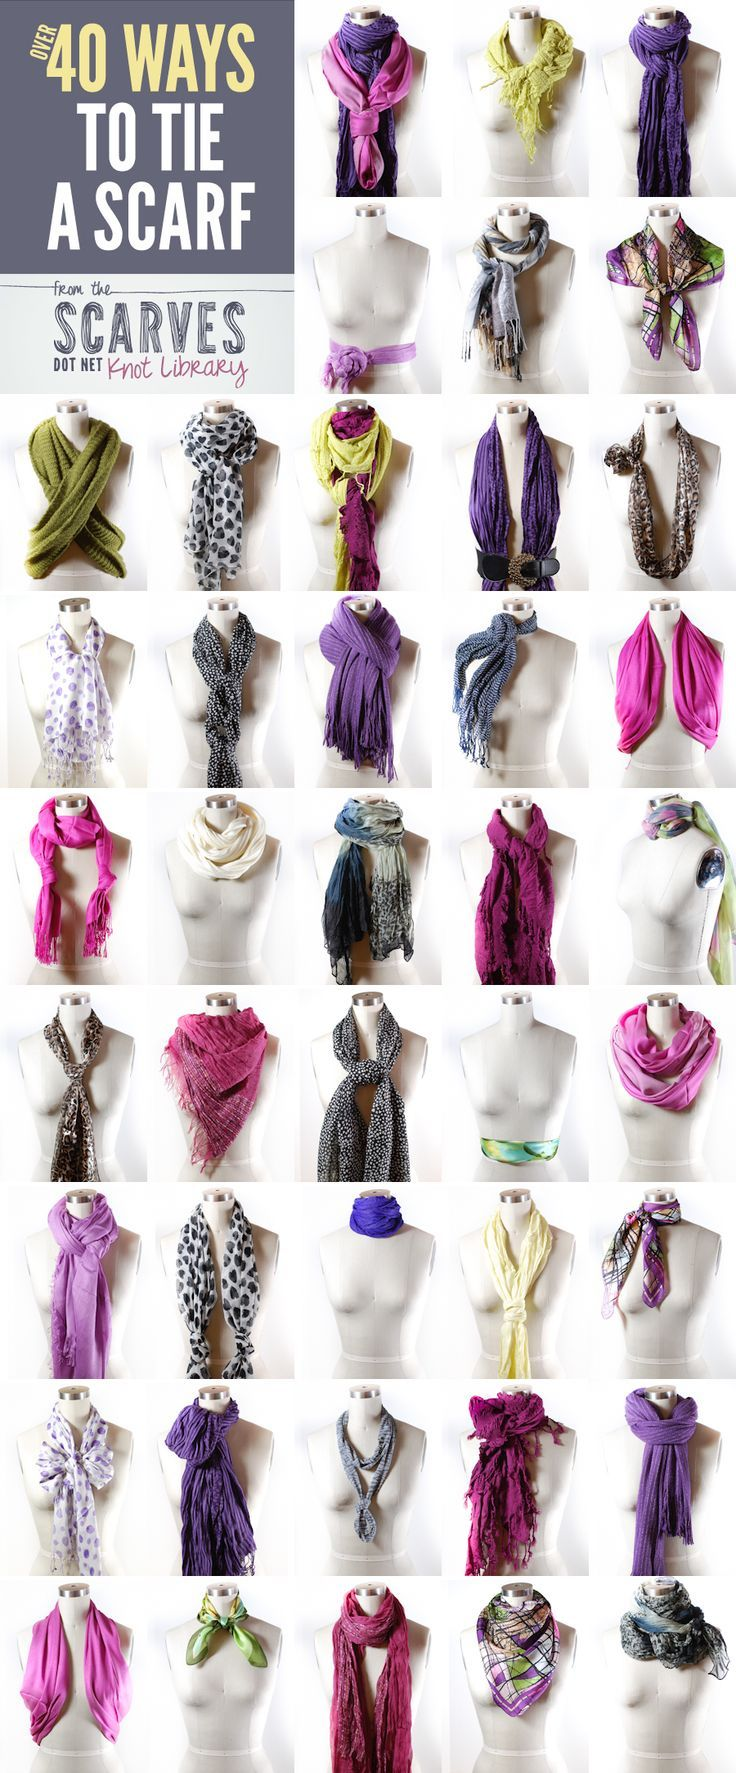 50+ Ways To Tie A Scarf (finally Found The Site That Has Actual Instructions